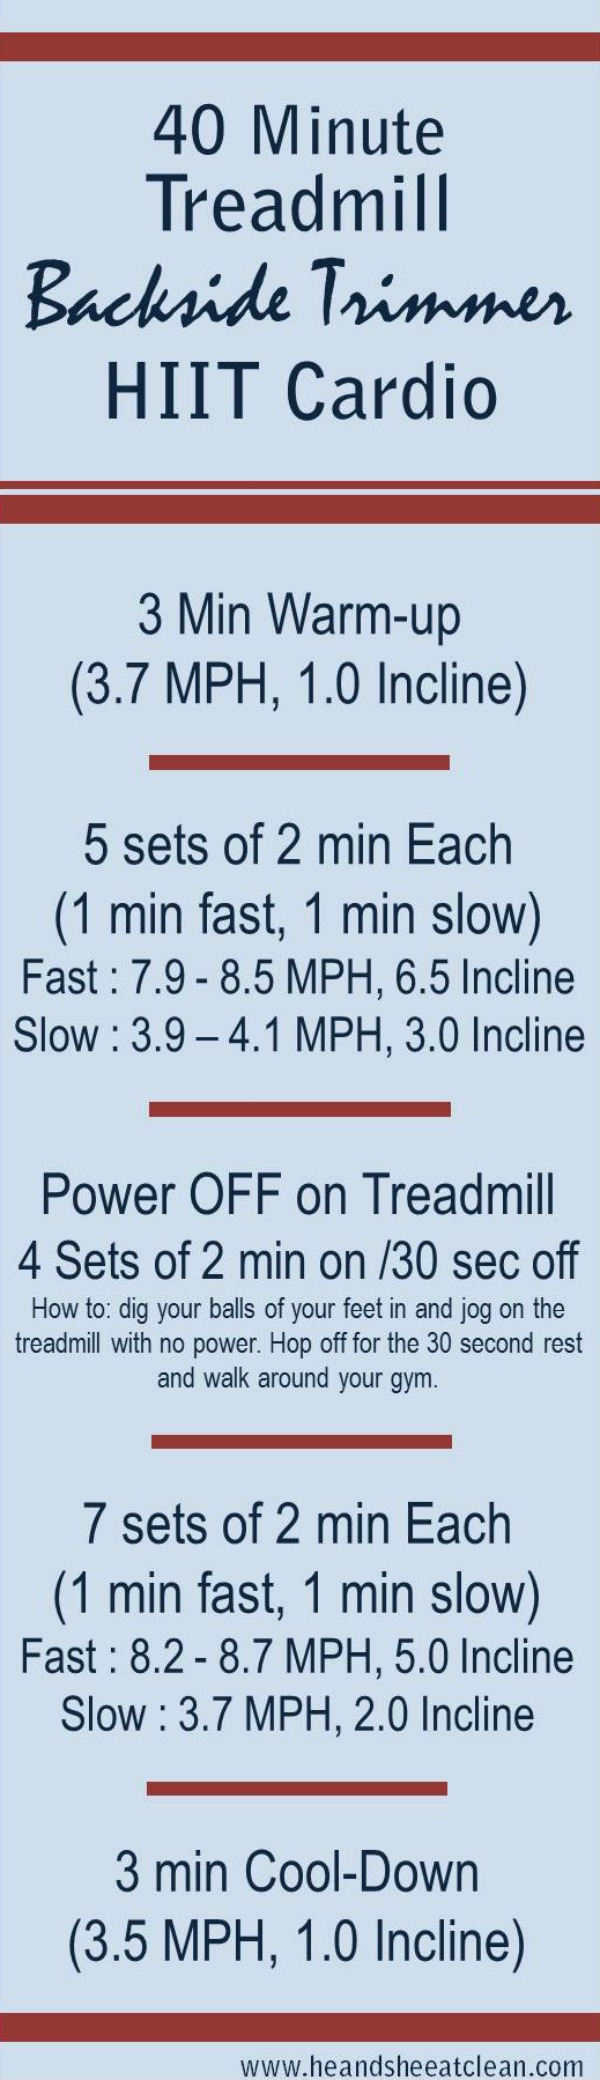 Backside Trimmer Treadmill HIIT Workout